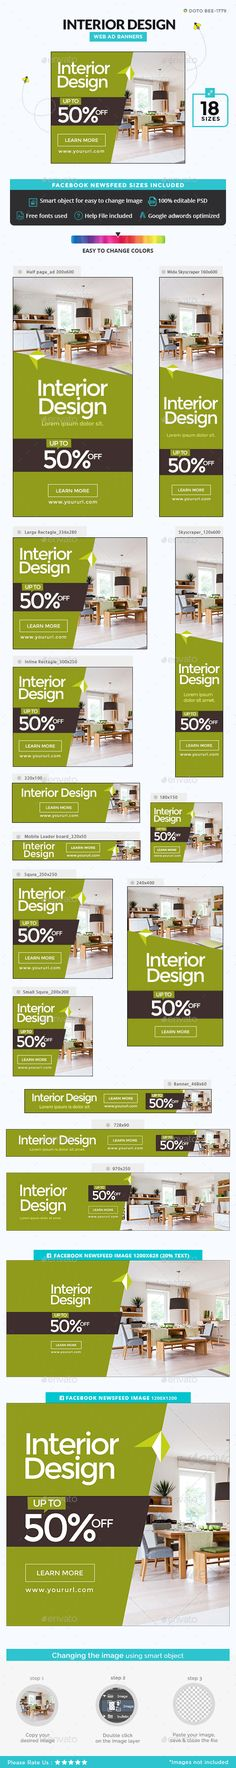 Interior Banners Ads Design Template - Banners & Ads Web Elements Design Template PSD. Download here: https://graphicriver.net/item/interior-banners/18921444?ref=yinkira